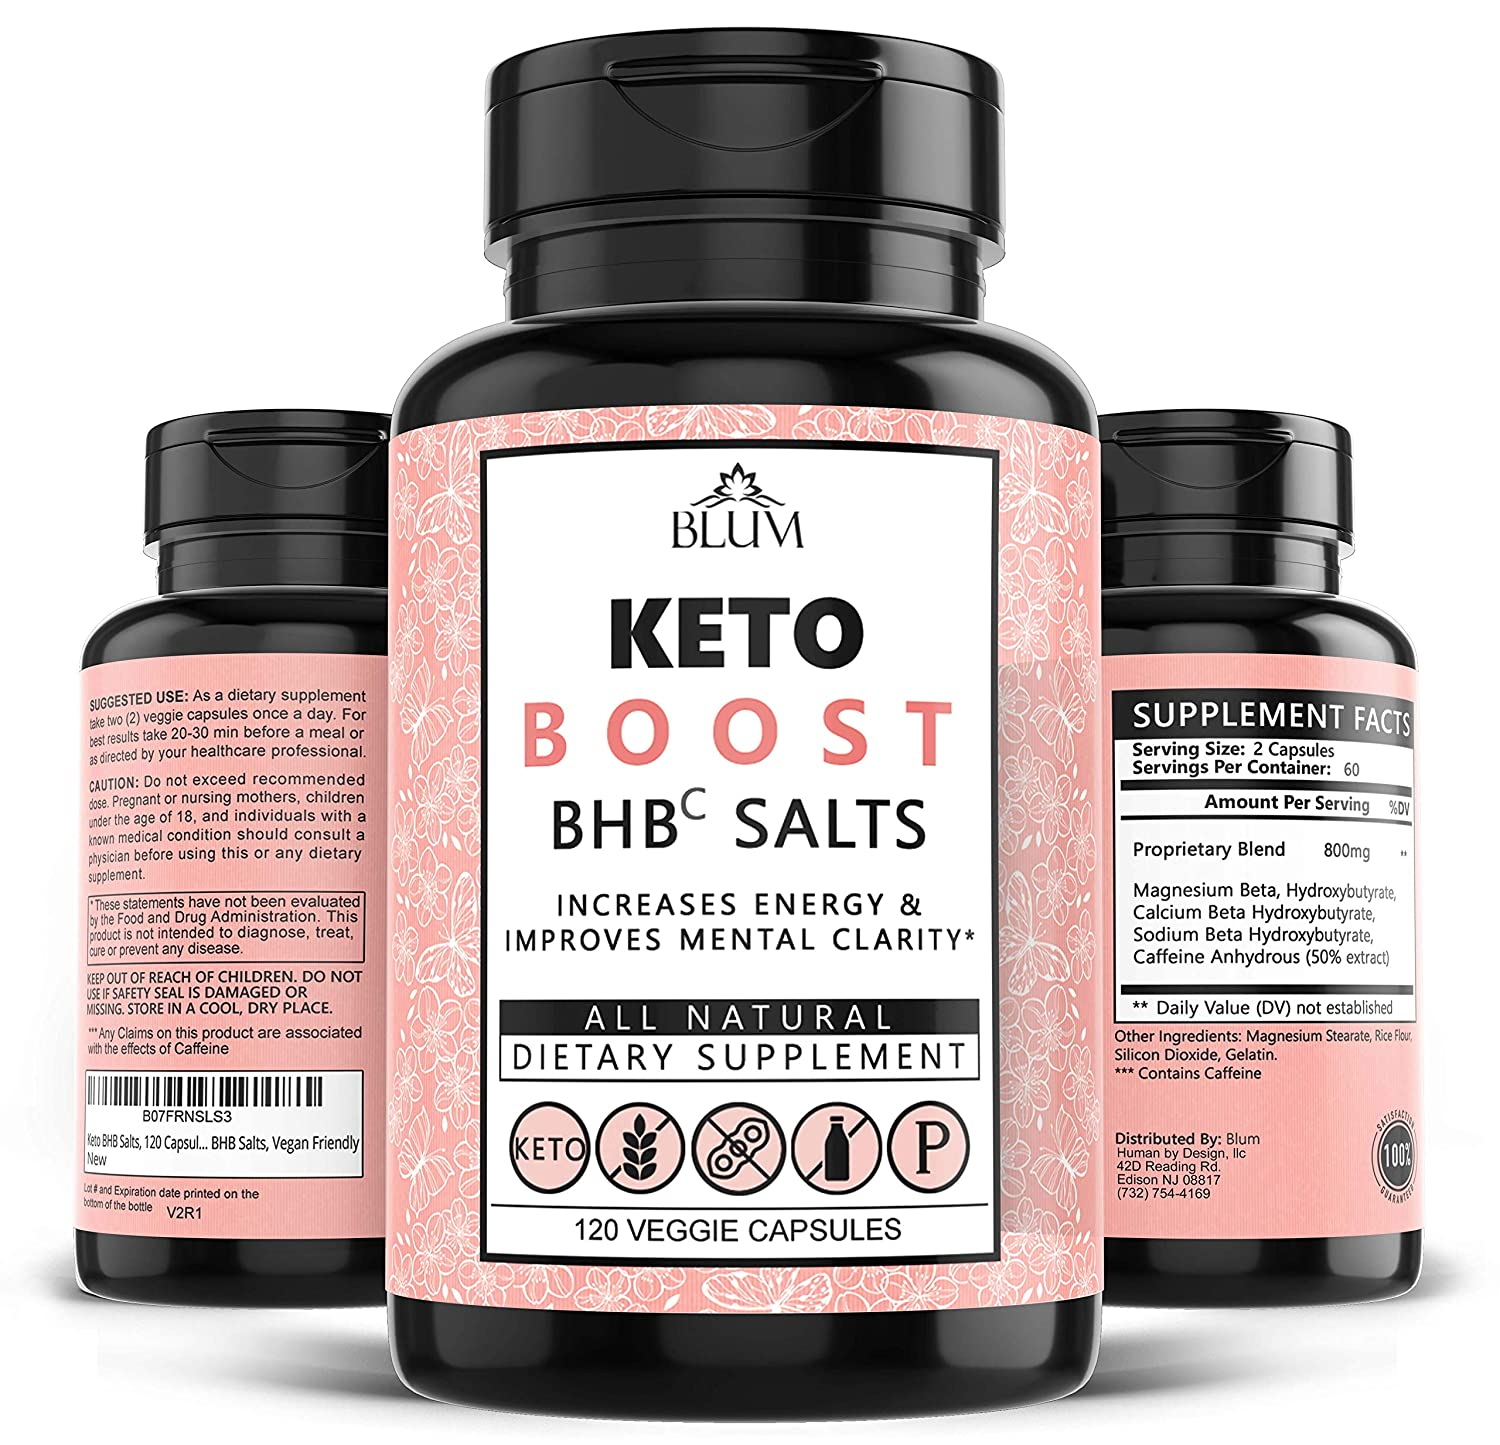 Keto Pills Weight Loss Supplements Keto Diet Pills for Ketosis Advanced BHB Exogenous Ketones 800mg Capsules for Rapid Fat Burn, Suppress Appetite, Increase Metabolism, Energy and Mental Focus 120ct